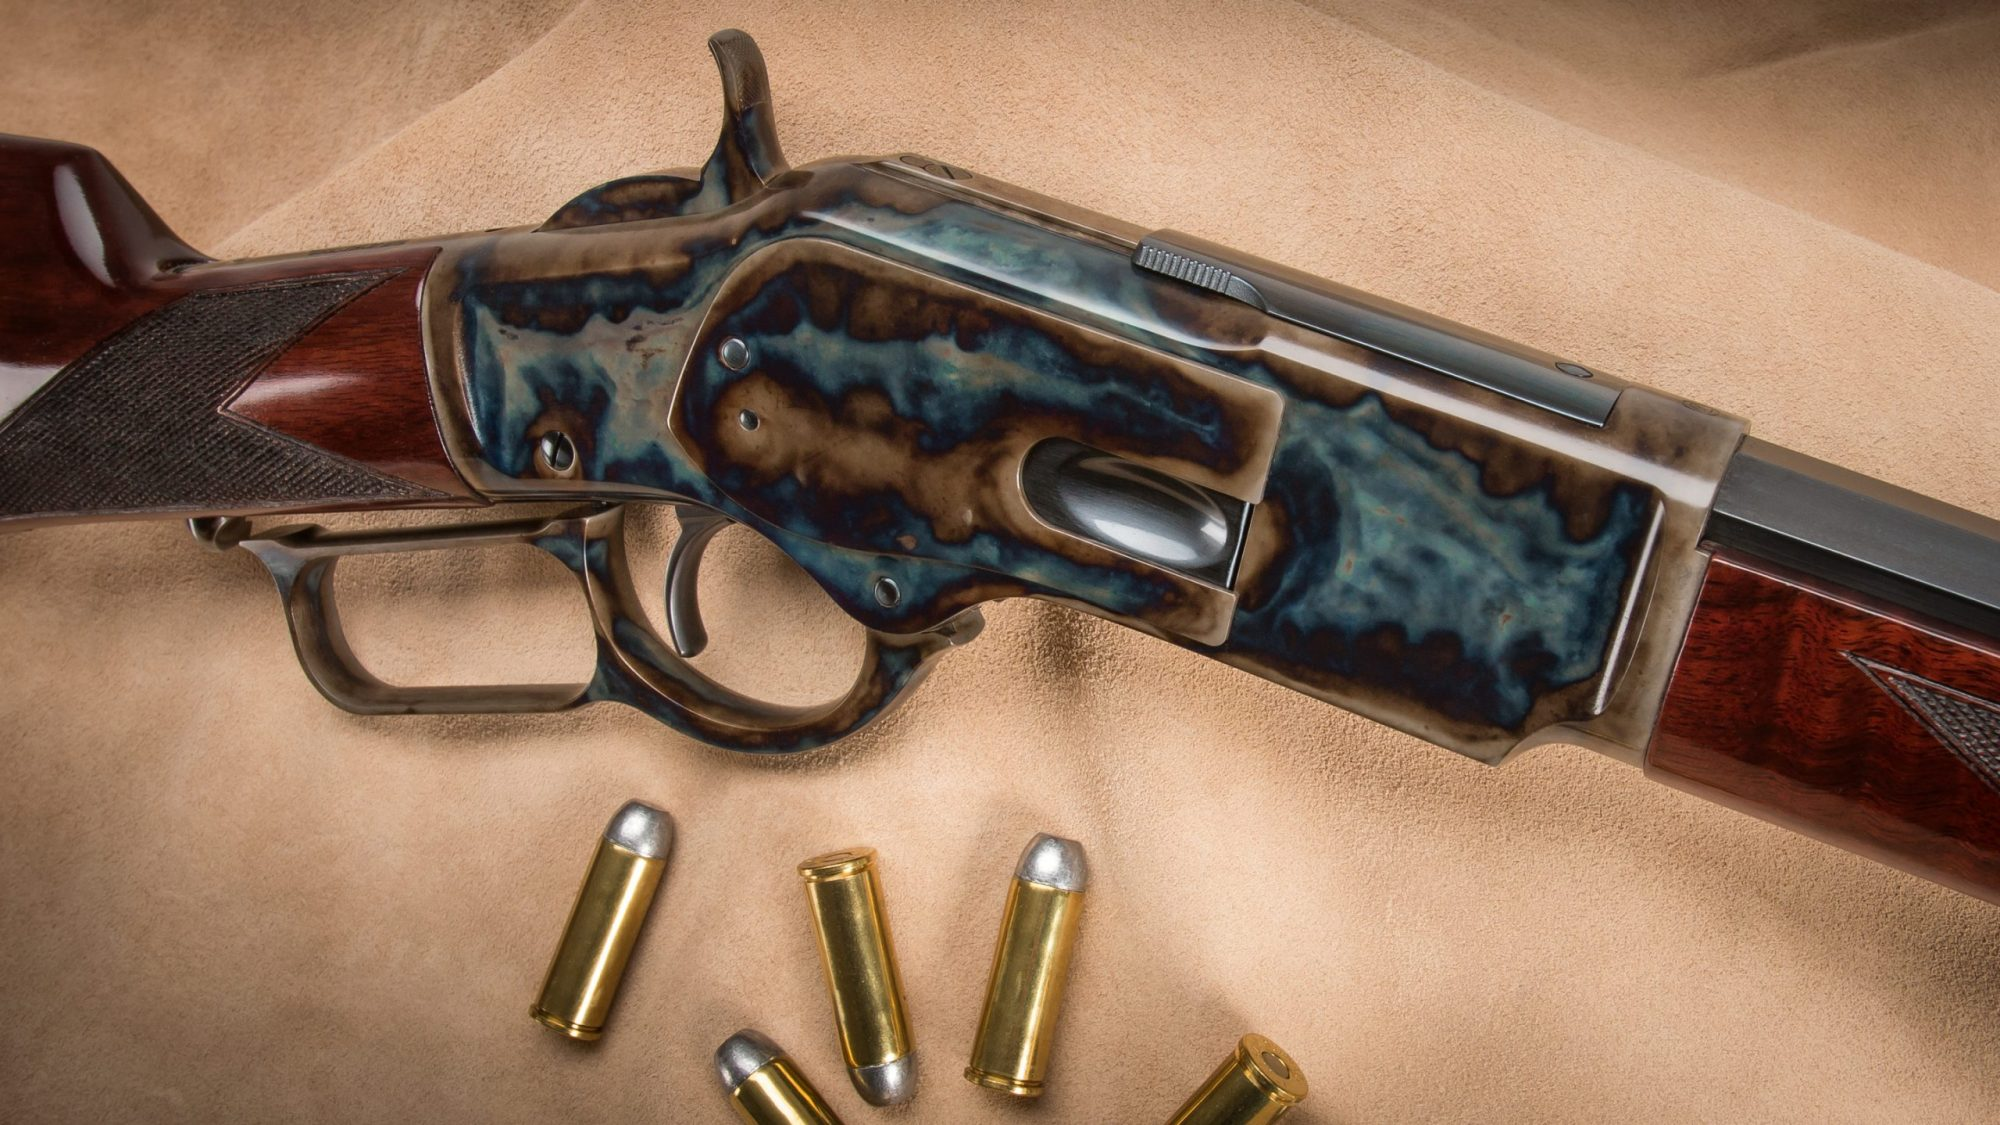 Turnbull-Finished Winchester 1873 in .357/.38 PAST PRODUCT - No ...